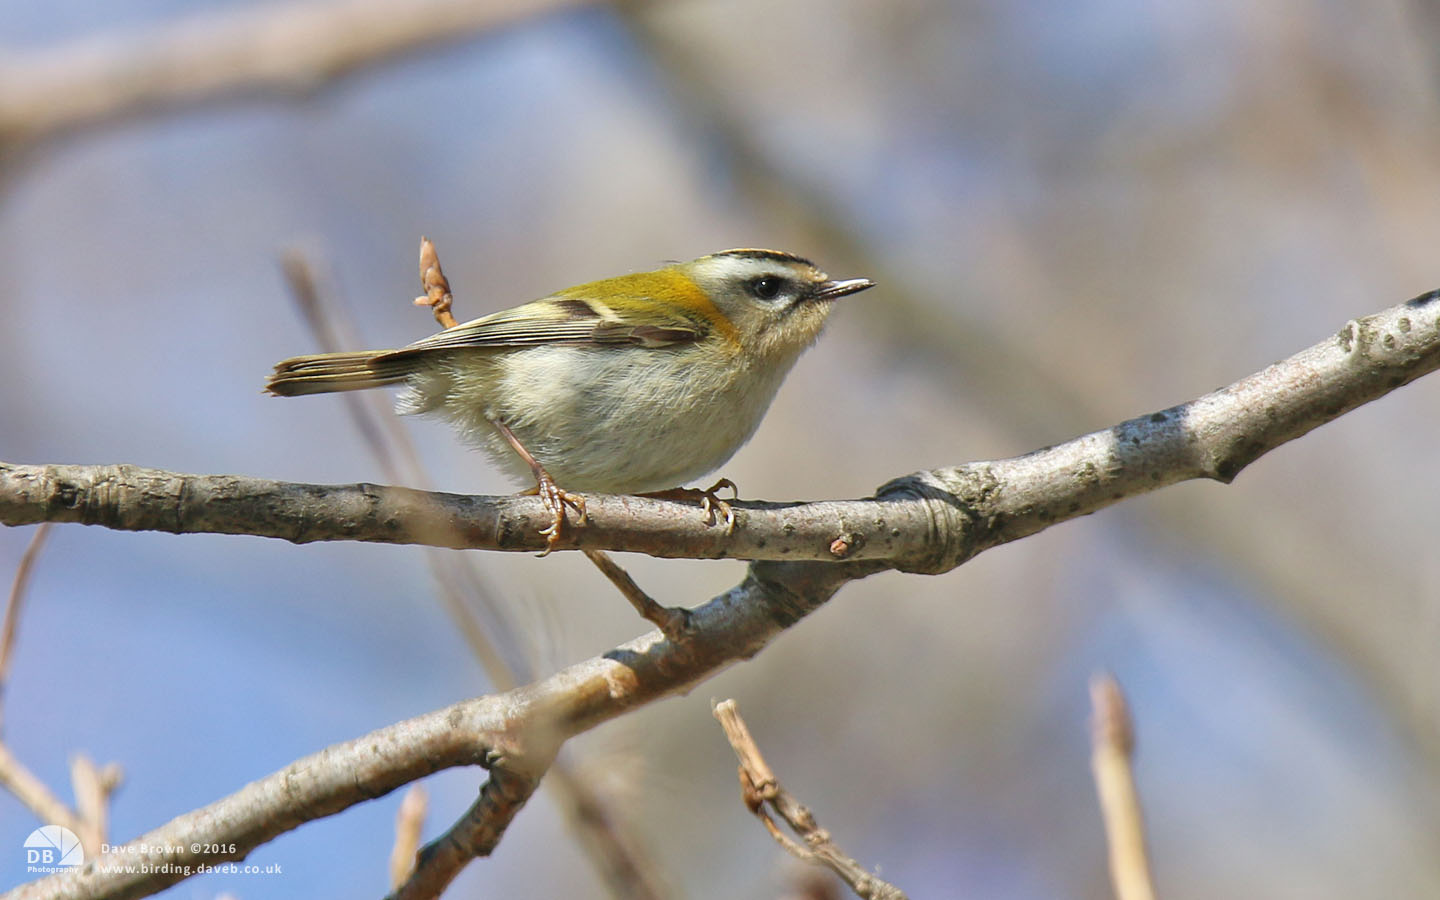 Firecrest at Hartlepool Headland, 7th April 2015